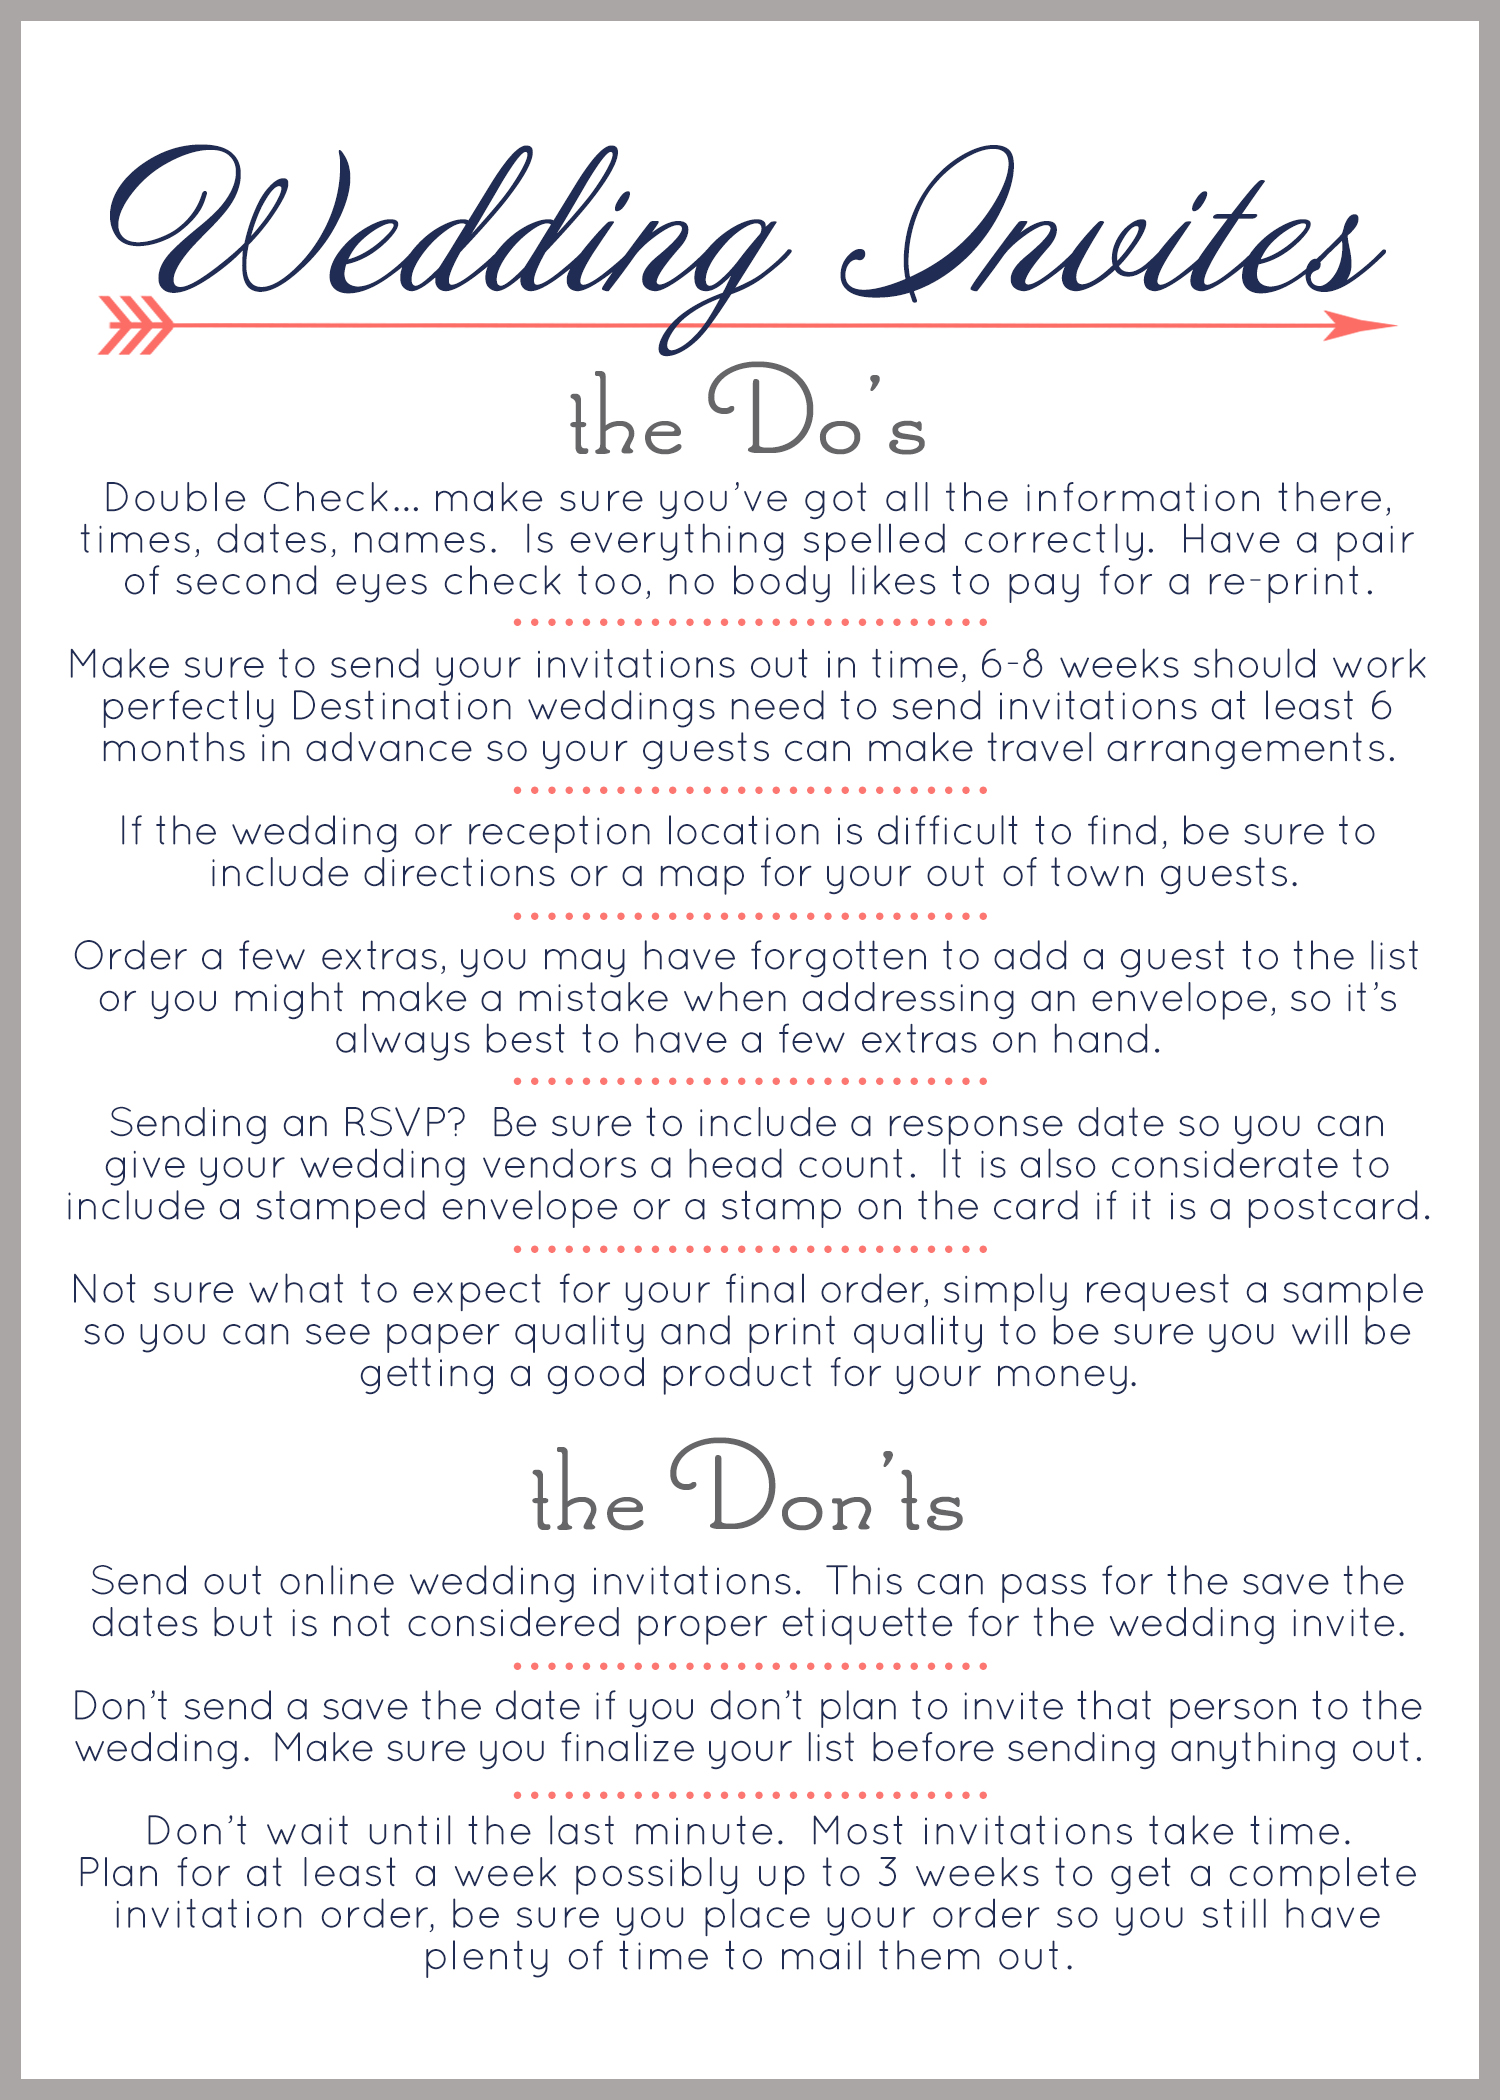 Wedding Invitation Tips Part 1 | Jeneze Designs